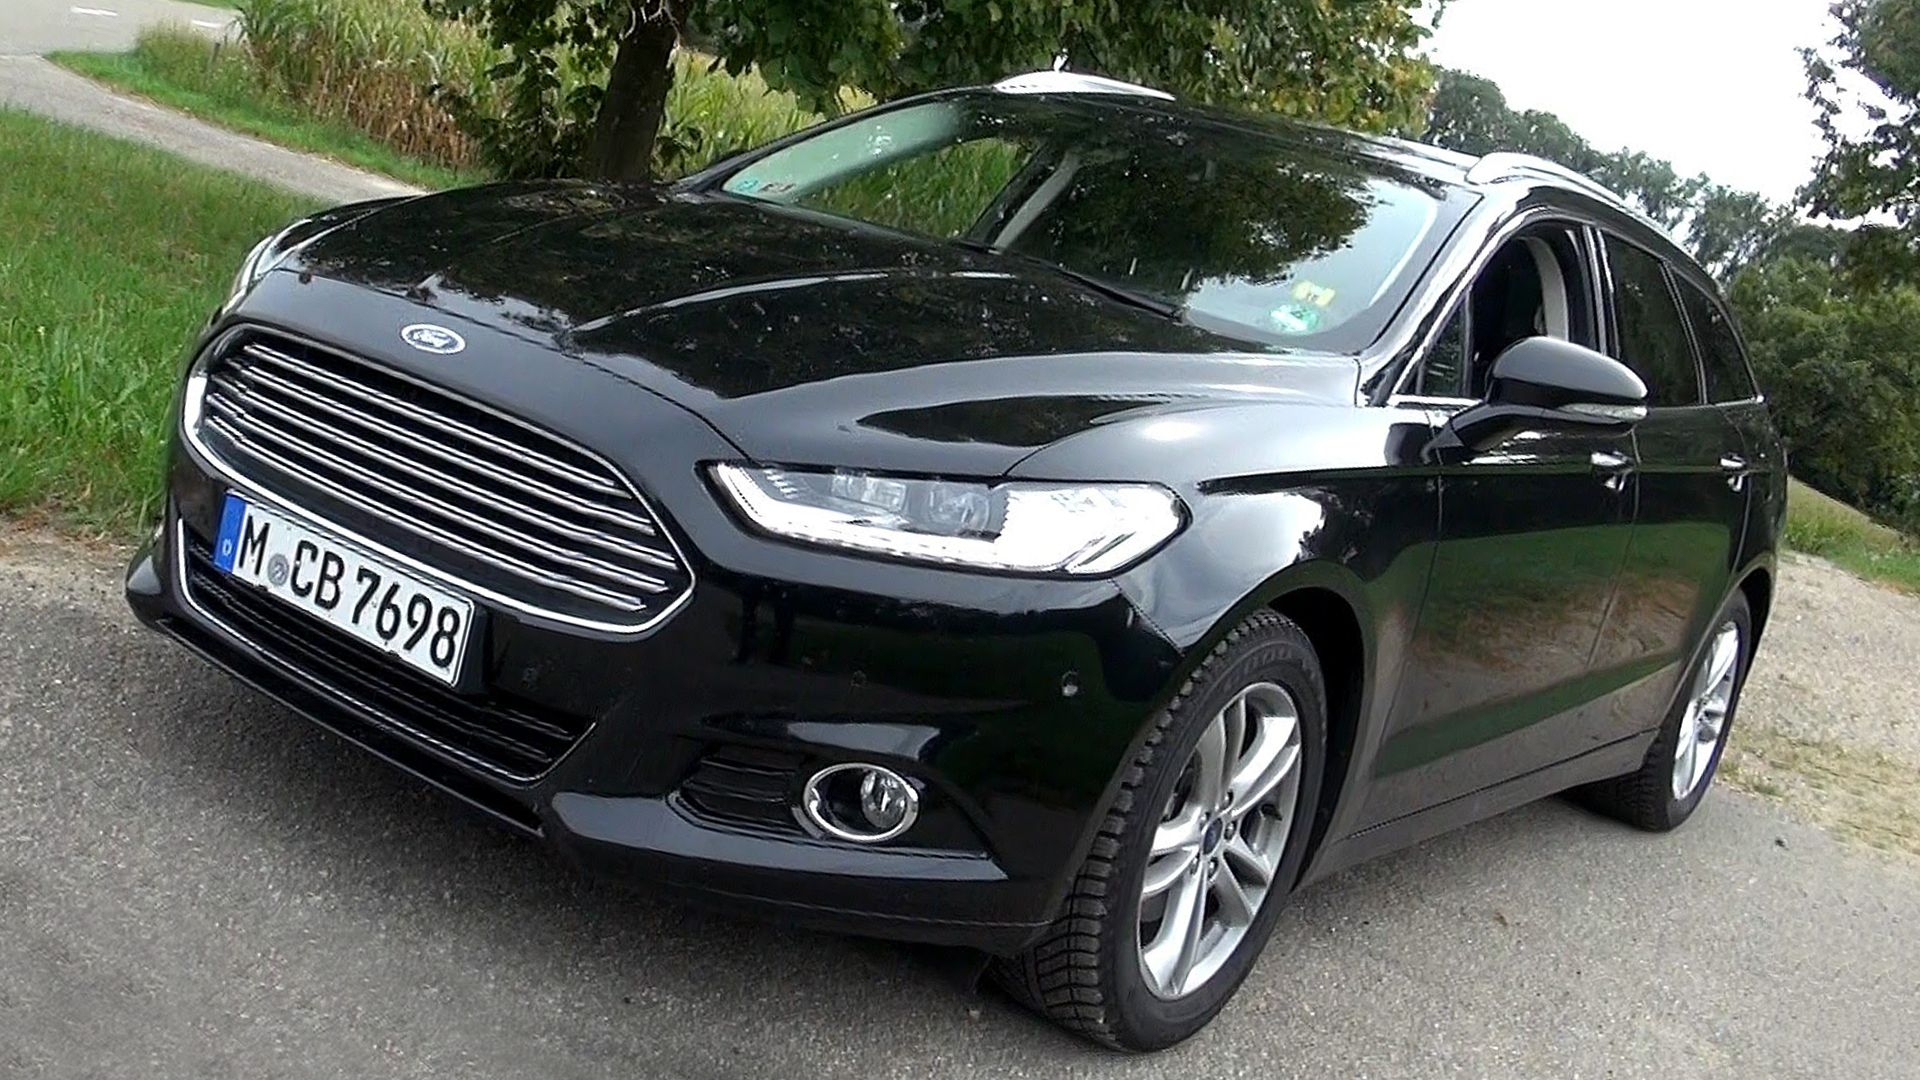 2019 Ford Mondeo Price Specs And Release Date Ford Mondeo